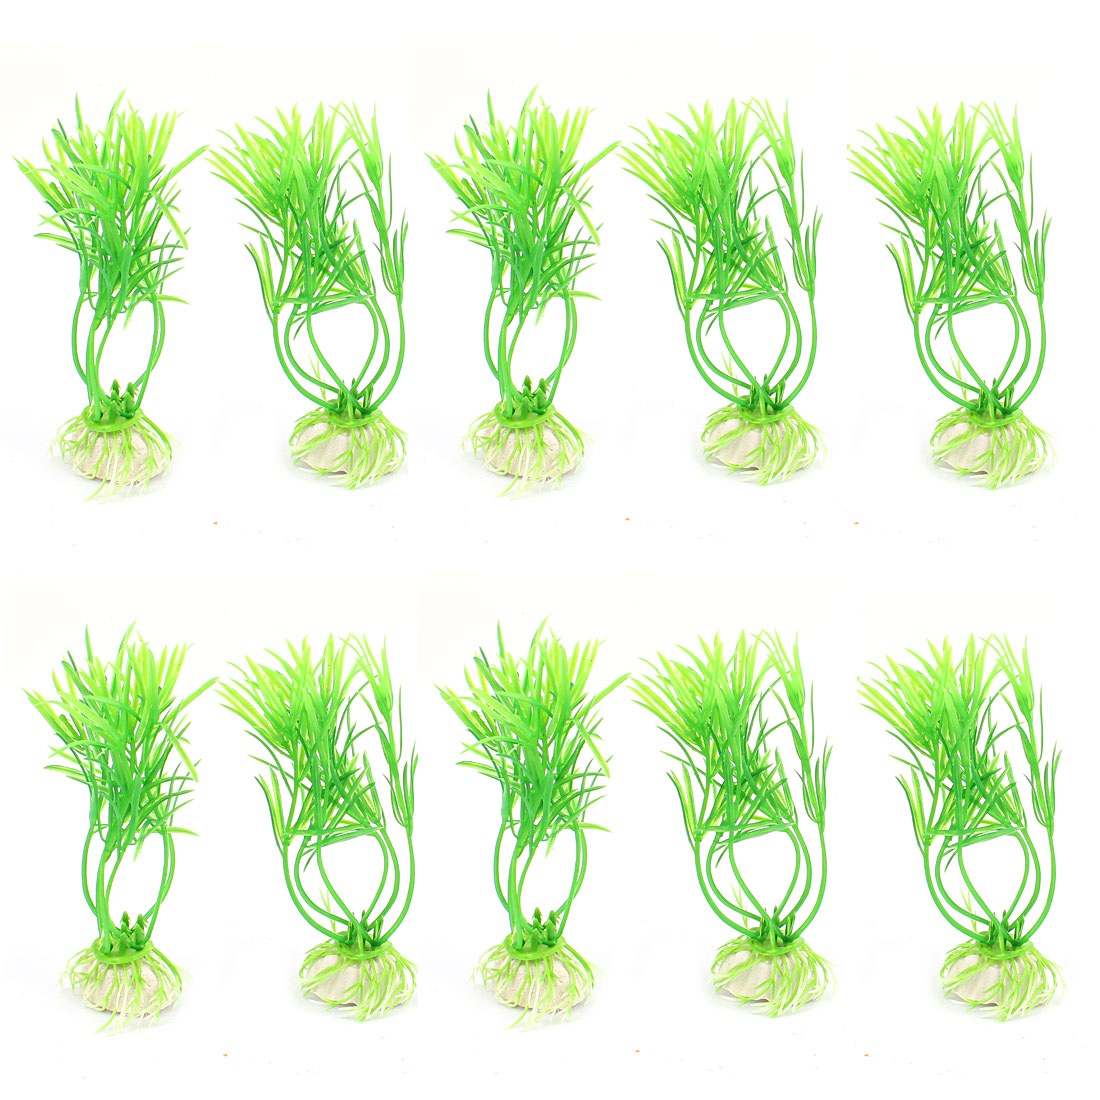 10pcs 12cm Height Green Plastic Ceramic Base Aquarium Plant Grass Decor for Fishbowl Fish Tank